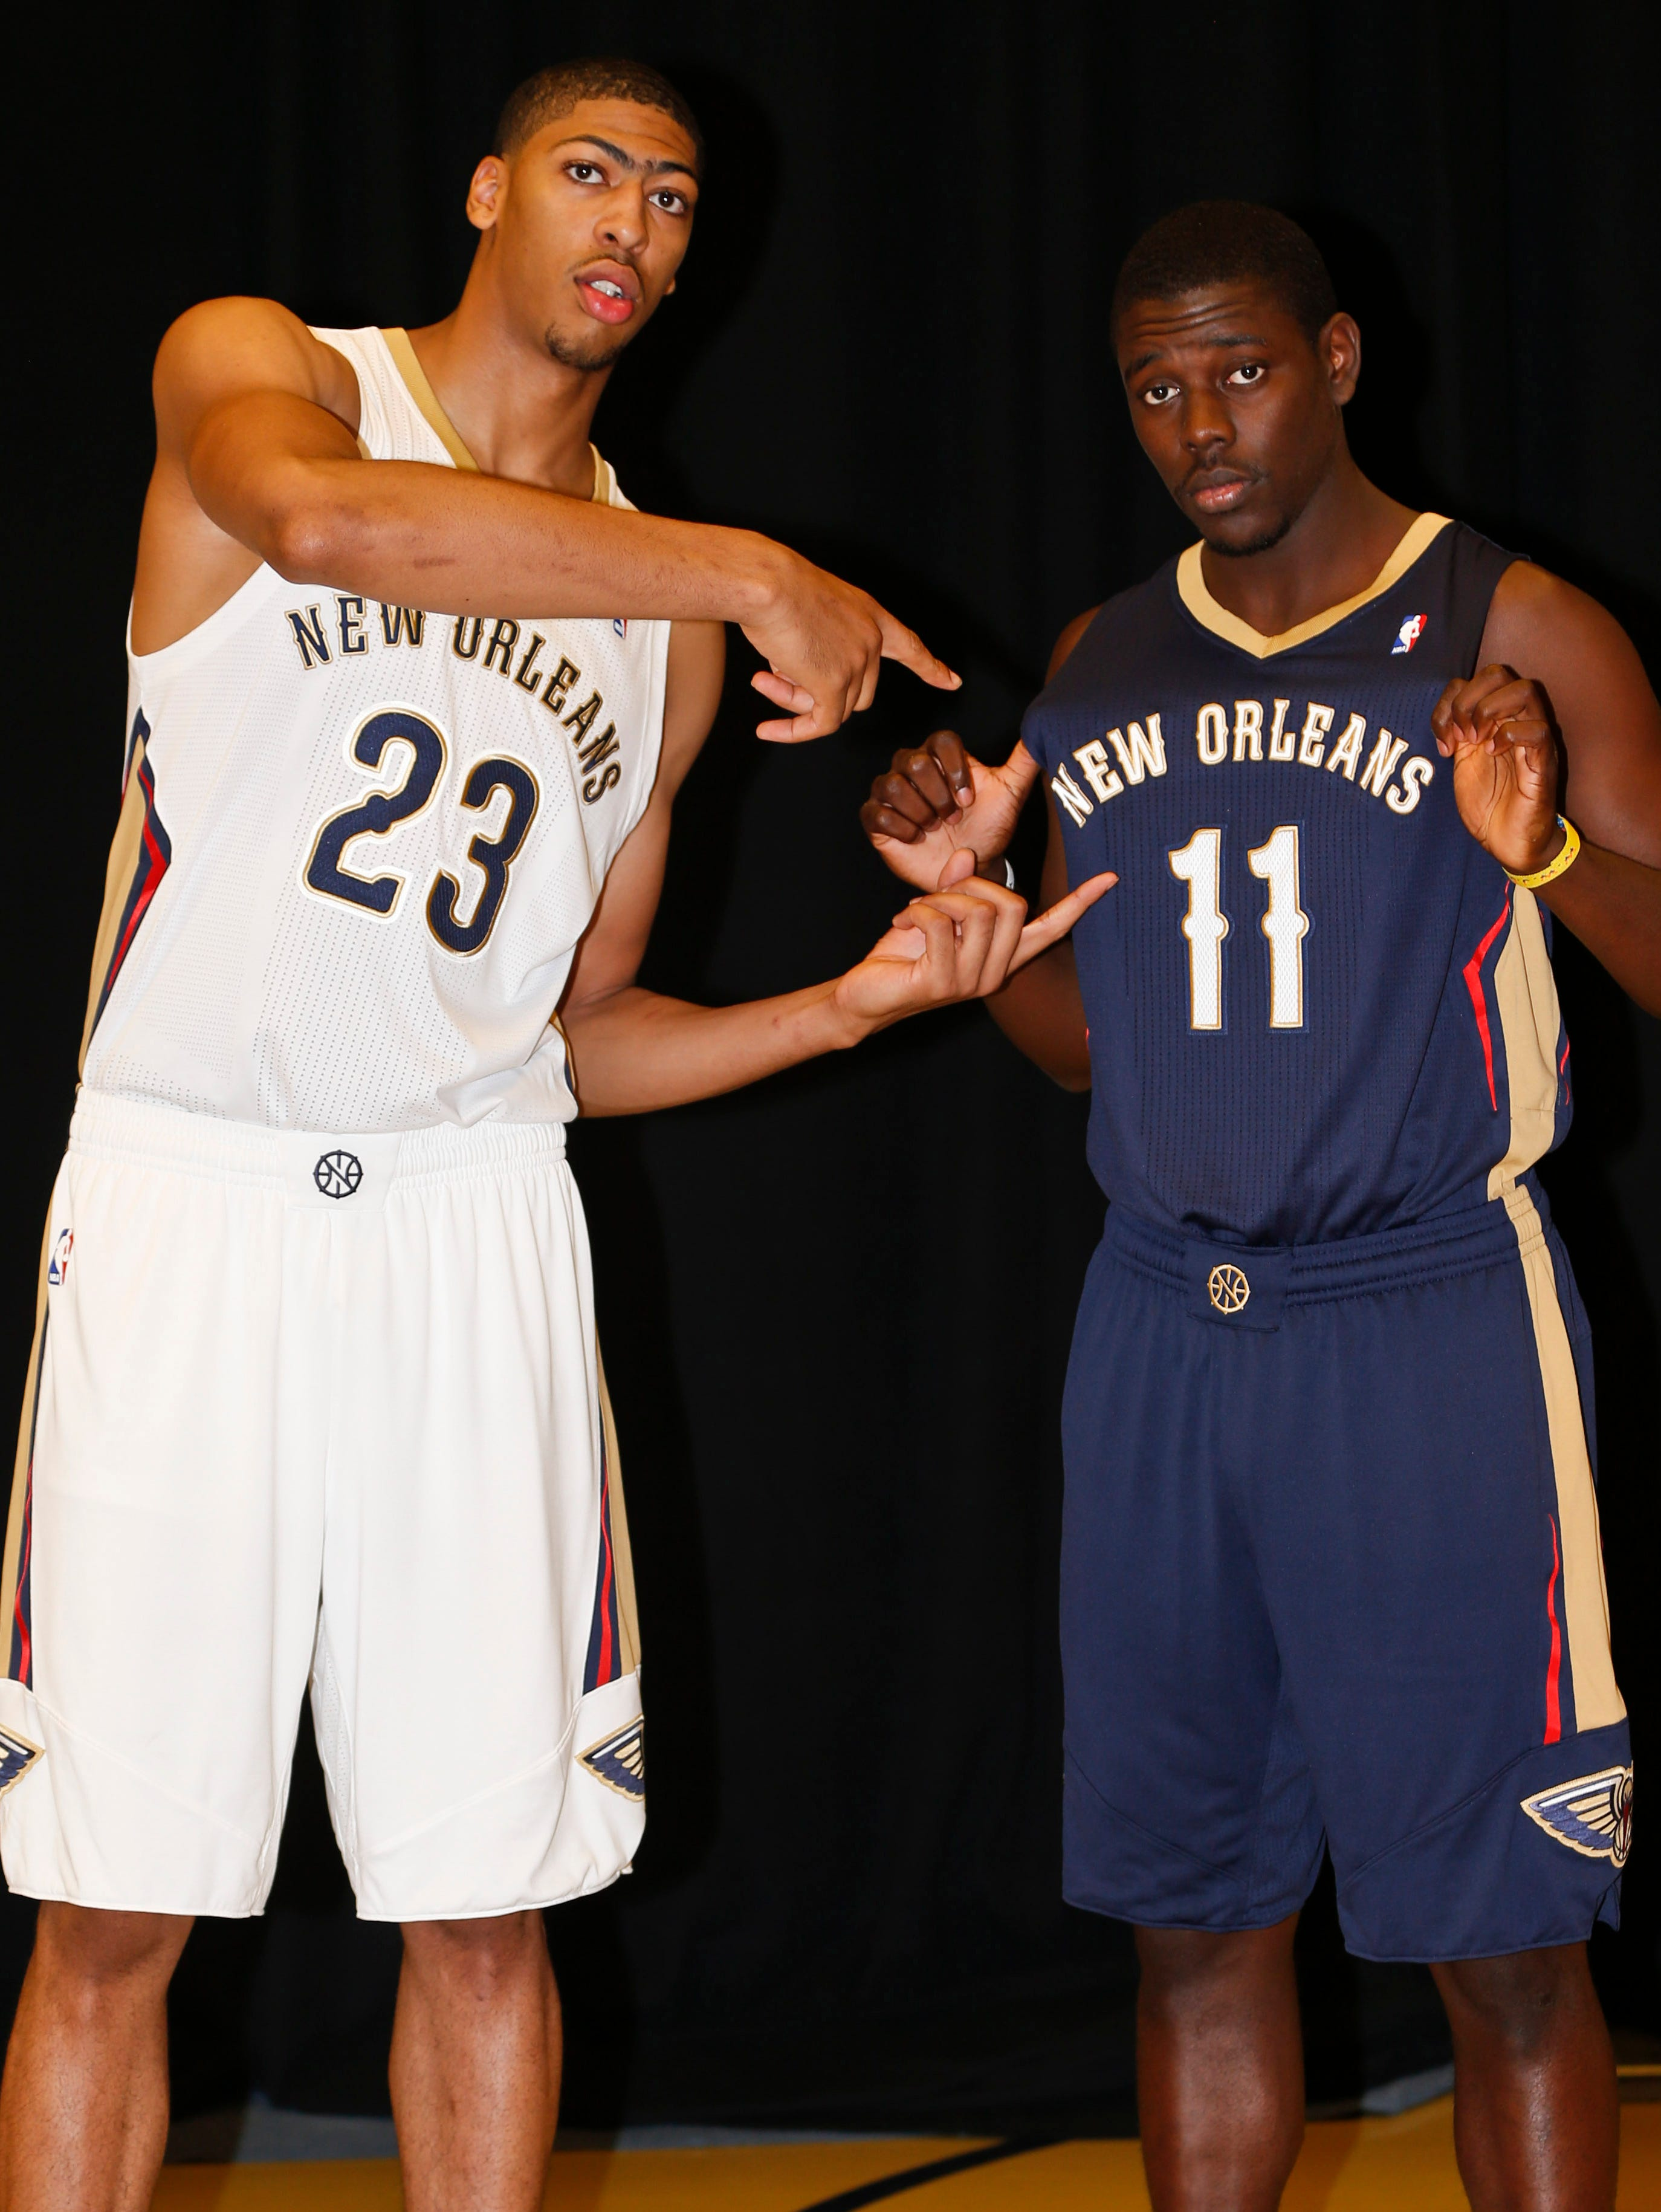 Nba Watchability Rankings No 11 New Orleans Pelicans